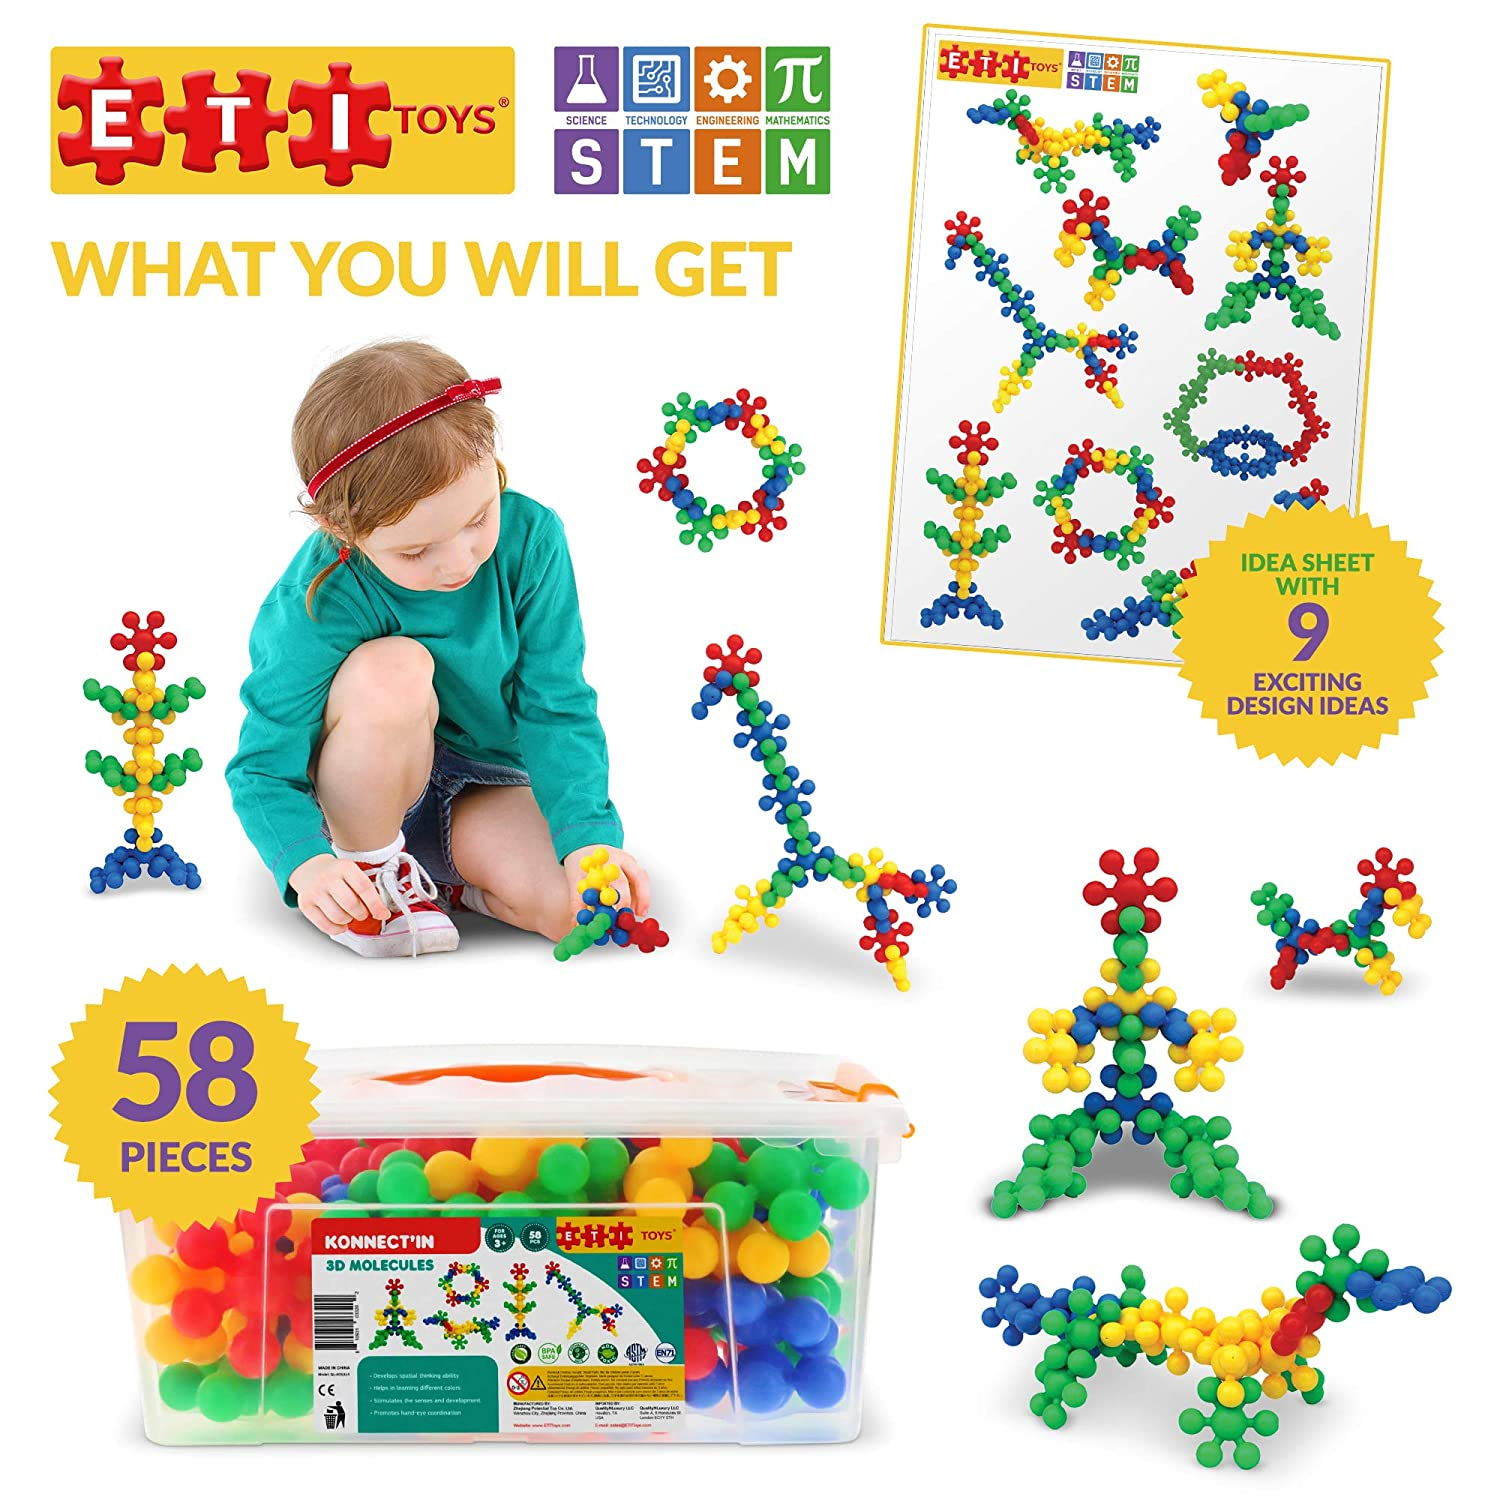 Toy for 3 Creative Skills Development 100/% Non-Toxic Best Gift Llama STEM Learning ETI Toys Endless Designs 80 Piece Konnectin Spokes; Build Airplane Tower 4 5 Year Old Boys and Girls.